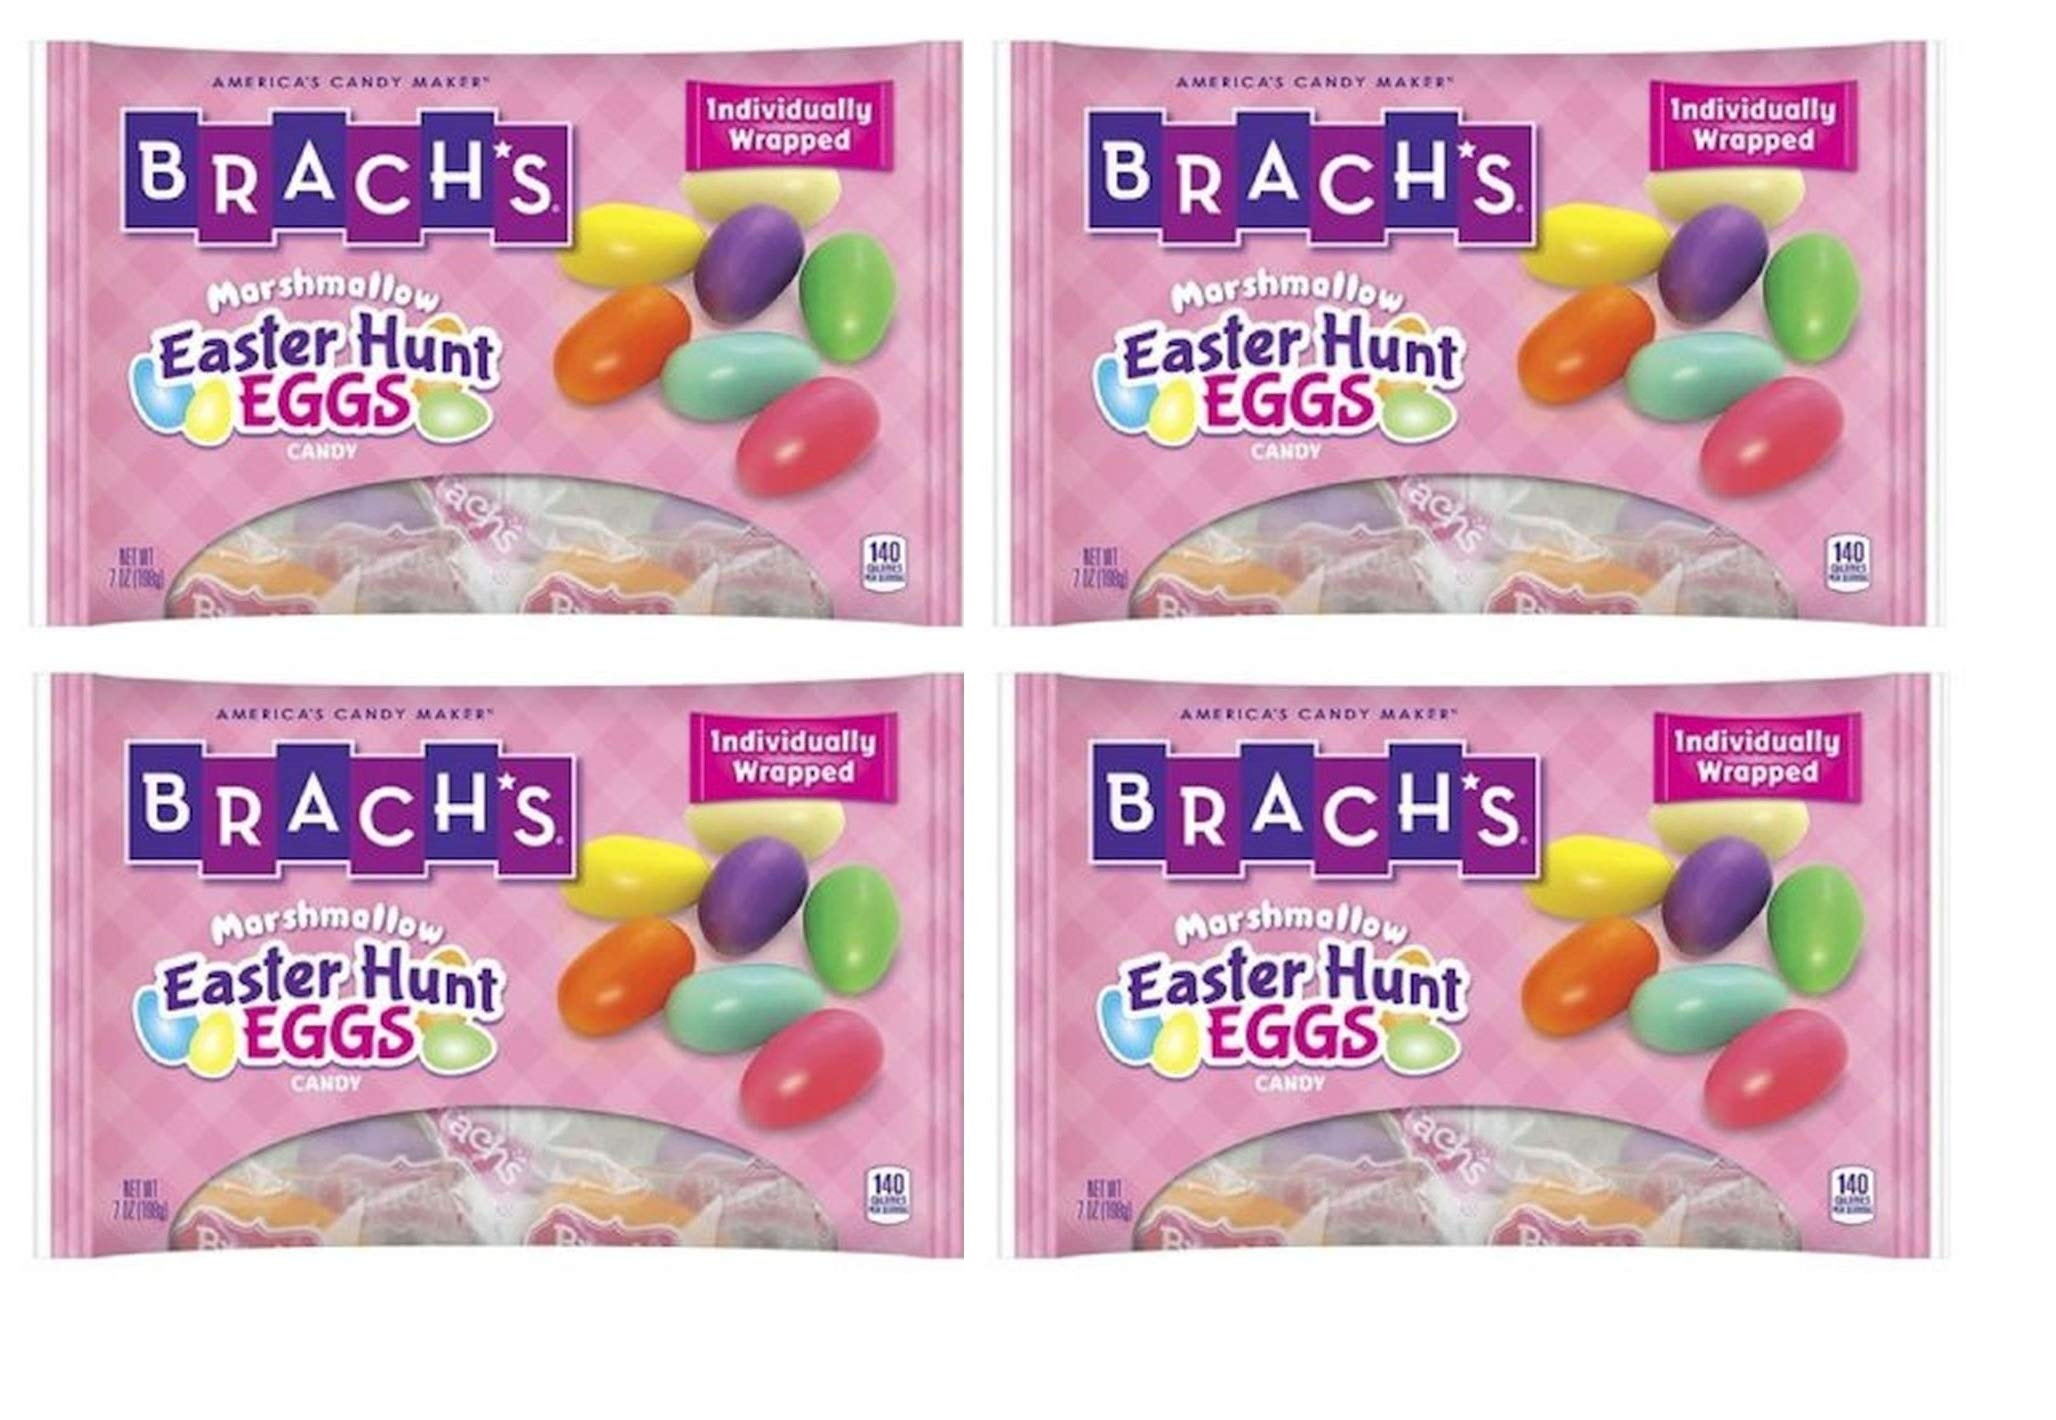 Brachs Easter Hunt Eggs Marshmallow Candy 7 oz (4 Pack)